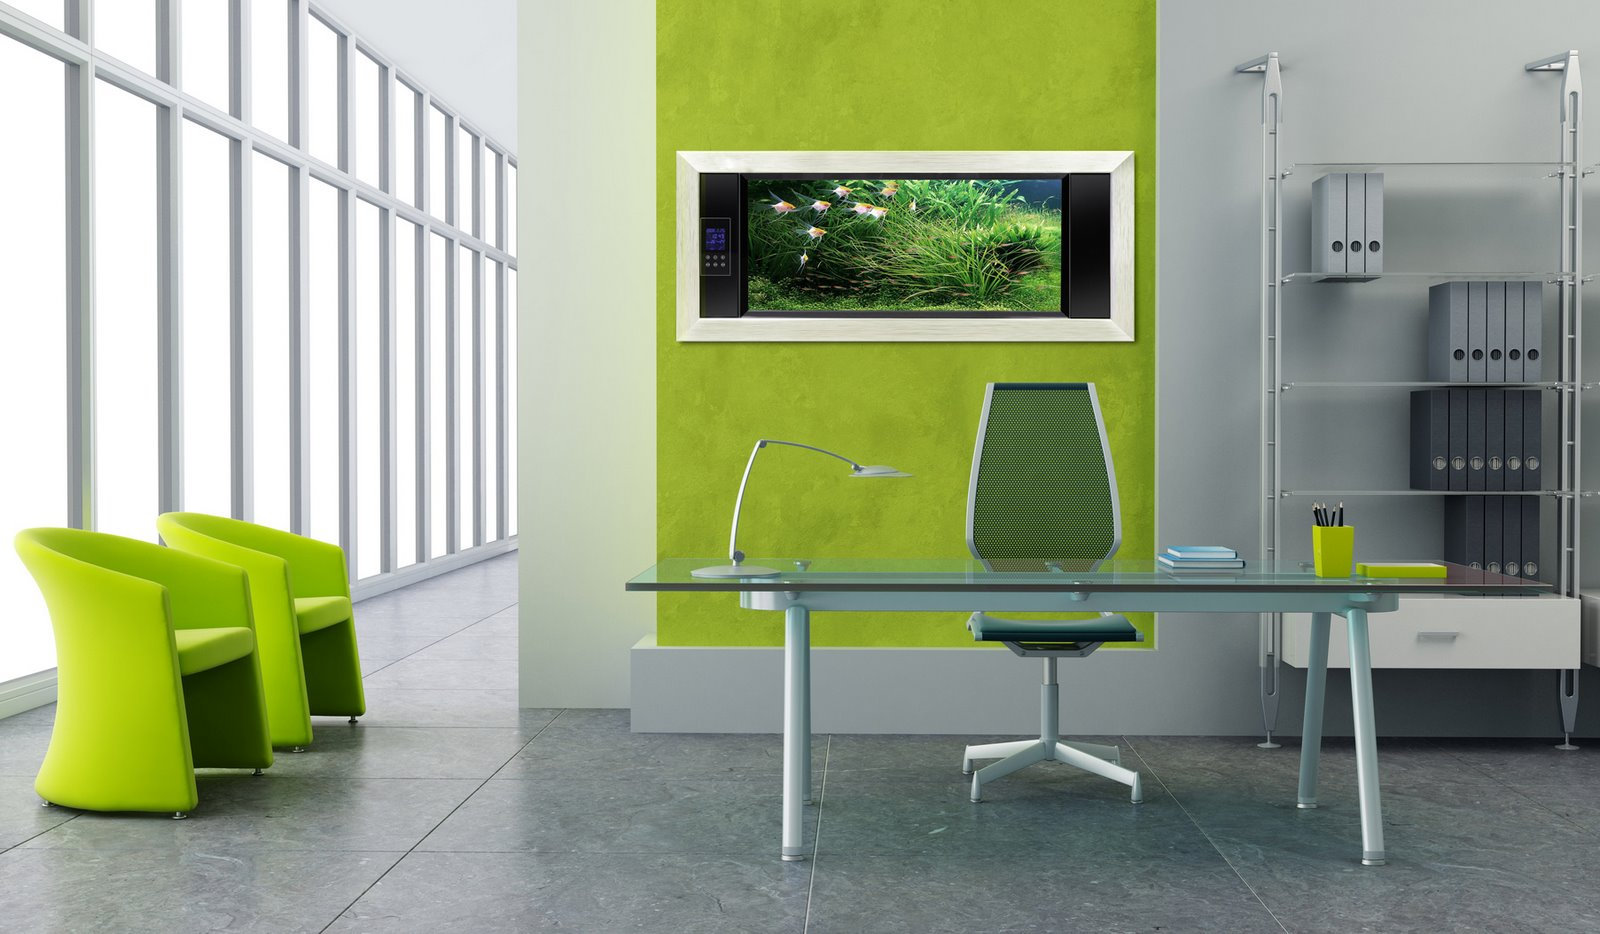 Table-Glass-and-Green-Chair-for-Inspiration-Design-with-Modern-Office-Ideas-Decorating